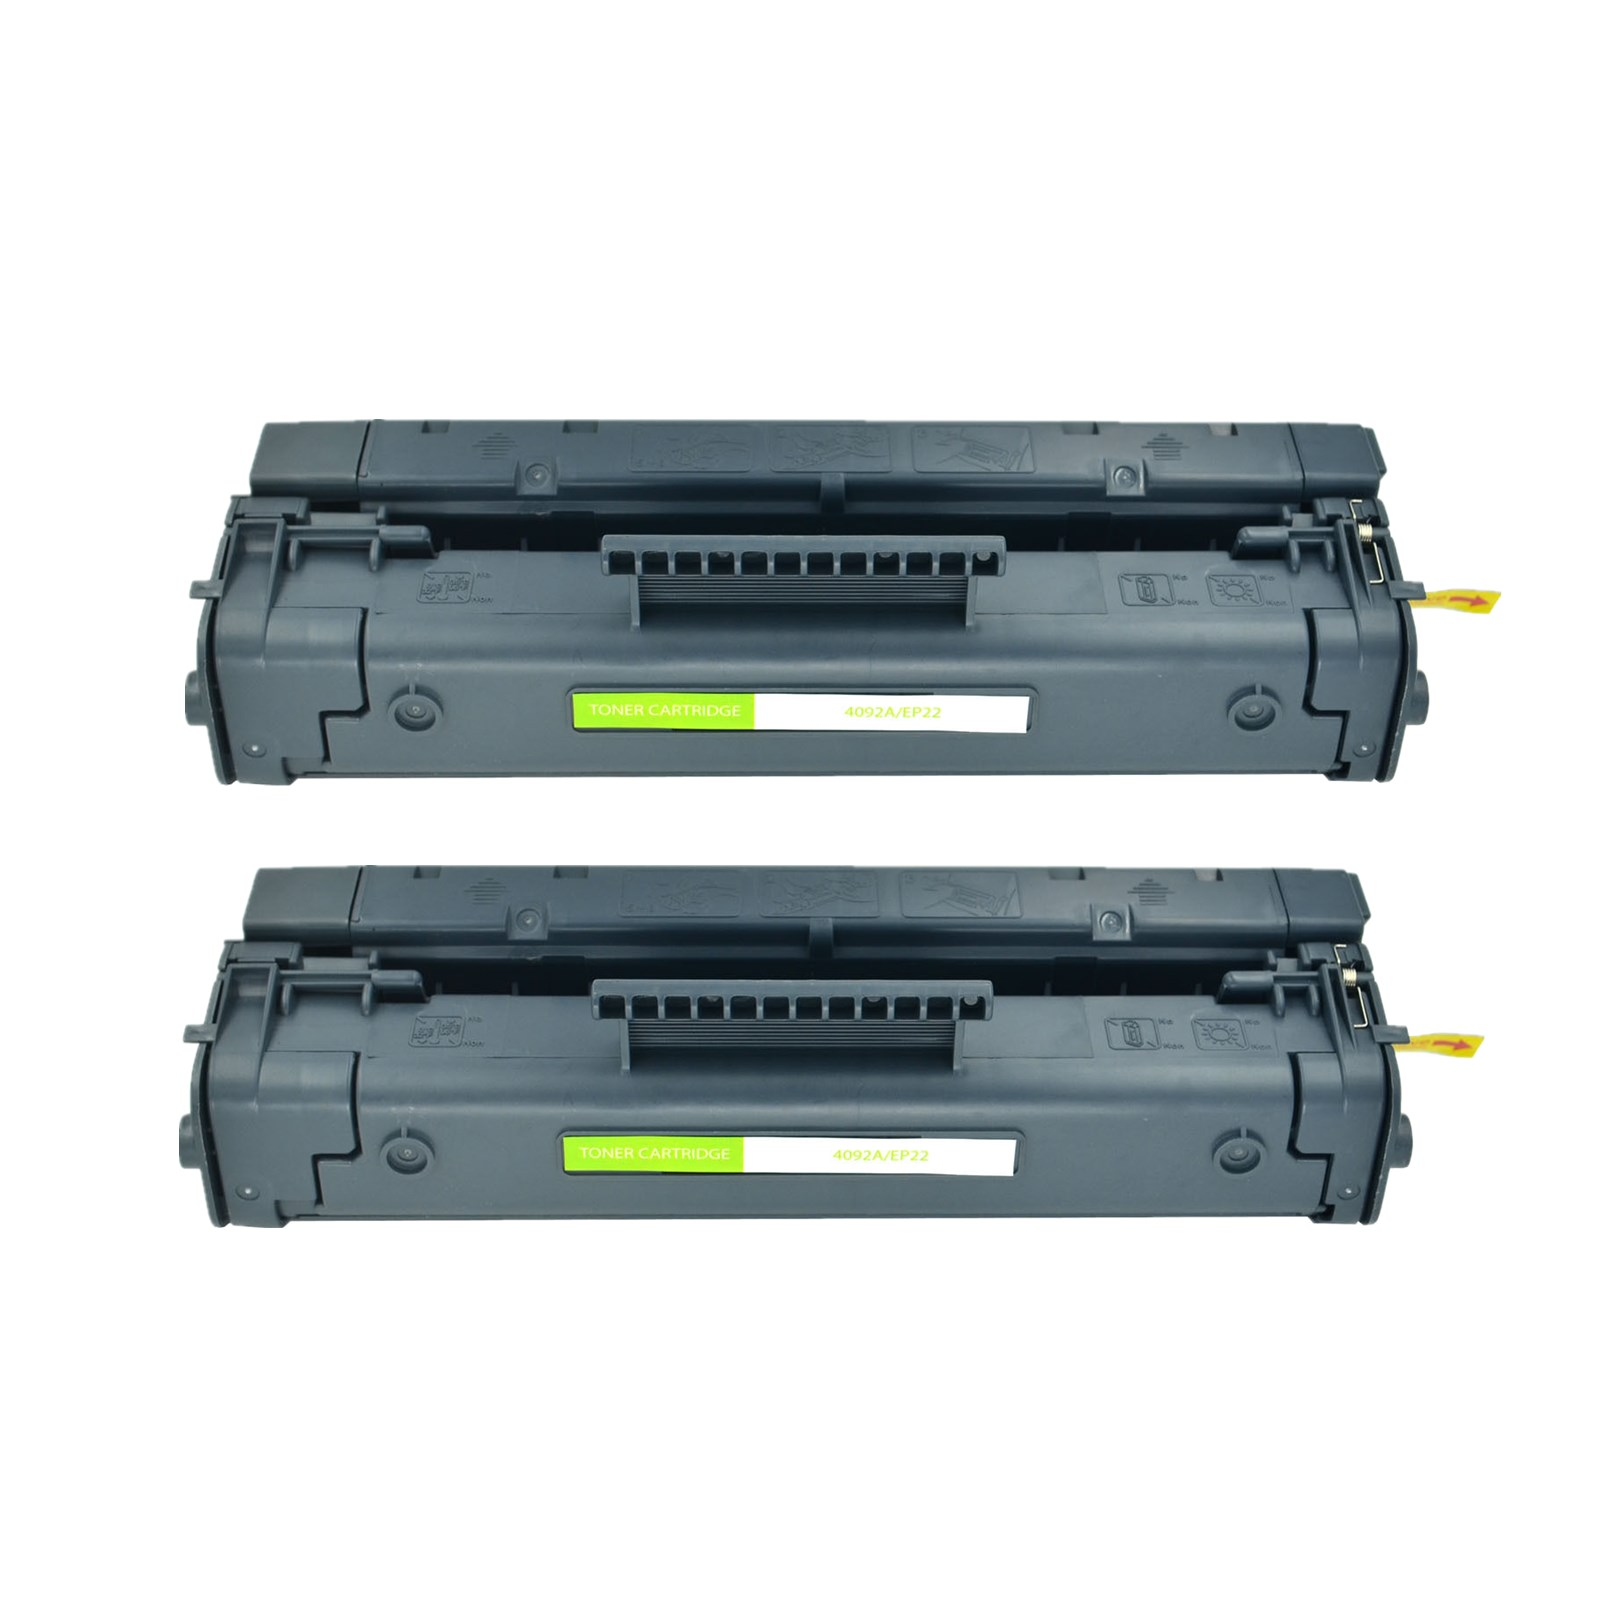 Laserjet 1100 Replacement for HP C4092A; Models 1100A,/ 1100A se,/ etc; Black Ink MG Compatible Toner Cartridges PTC4092A